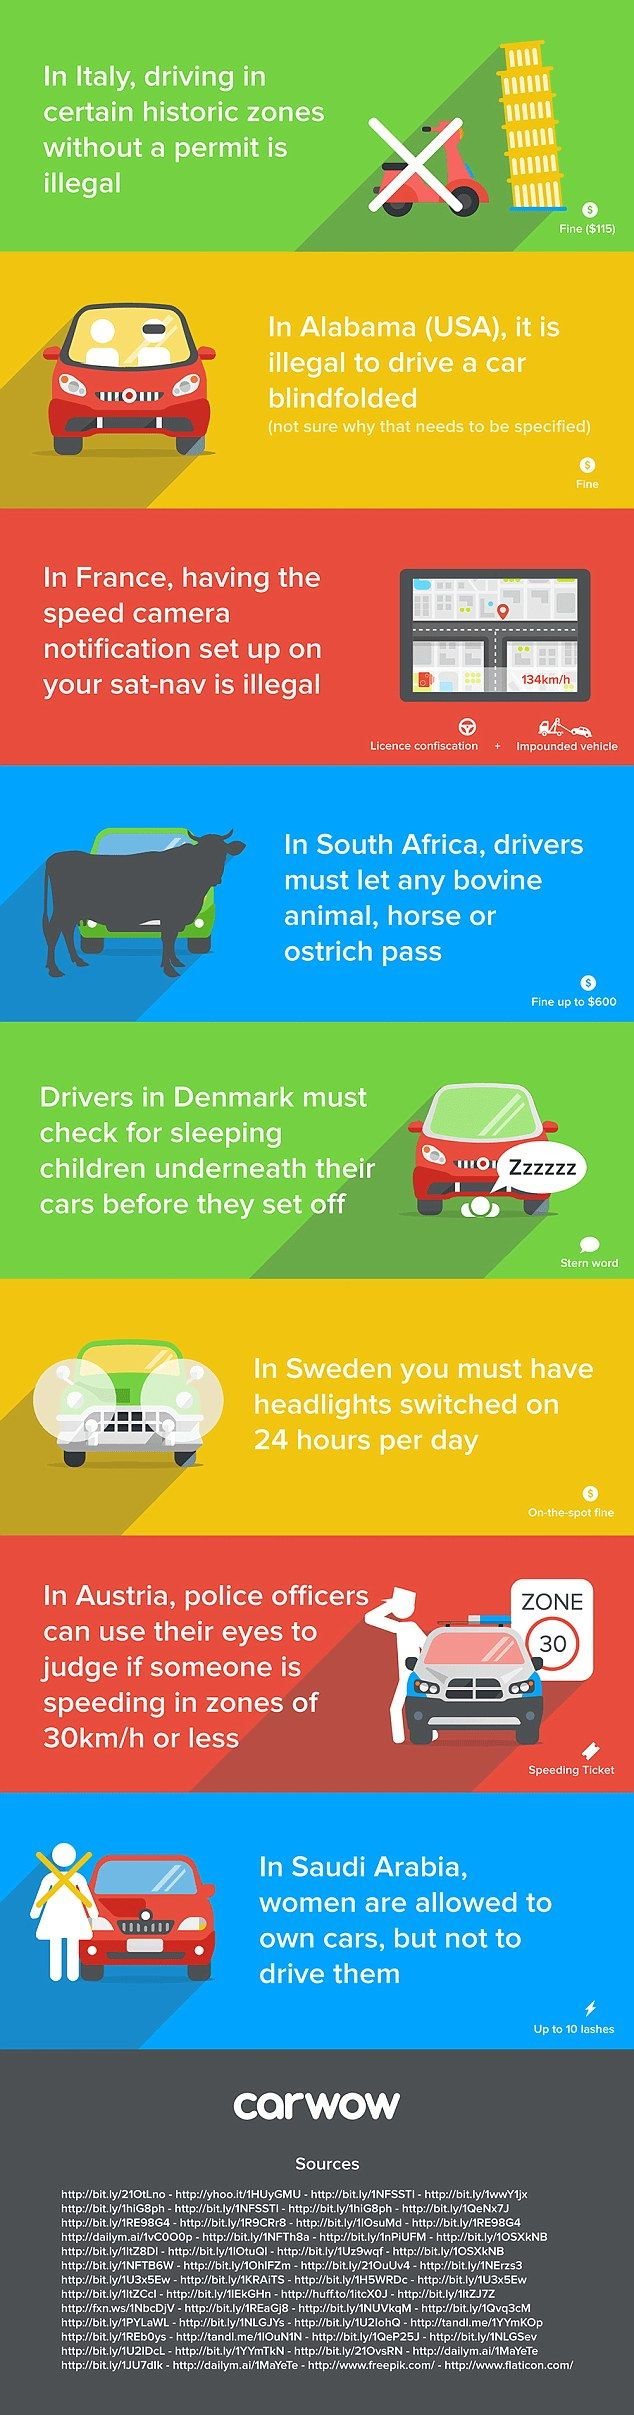 How to steer clear of trouble while on the road abroad infographic reveals the most unusual driving laws around the world including fines for dirty cars